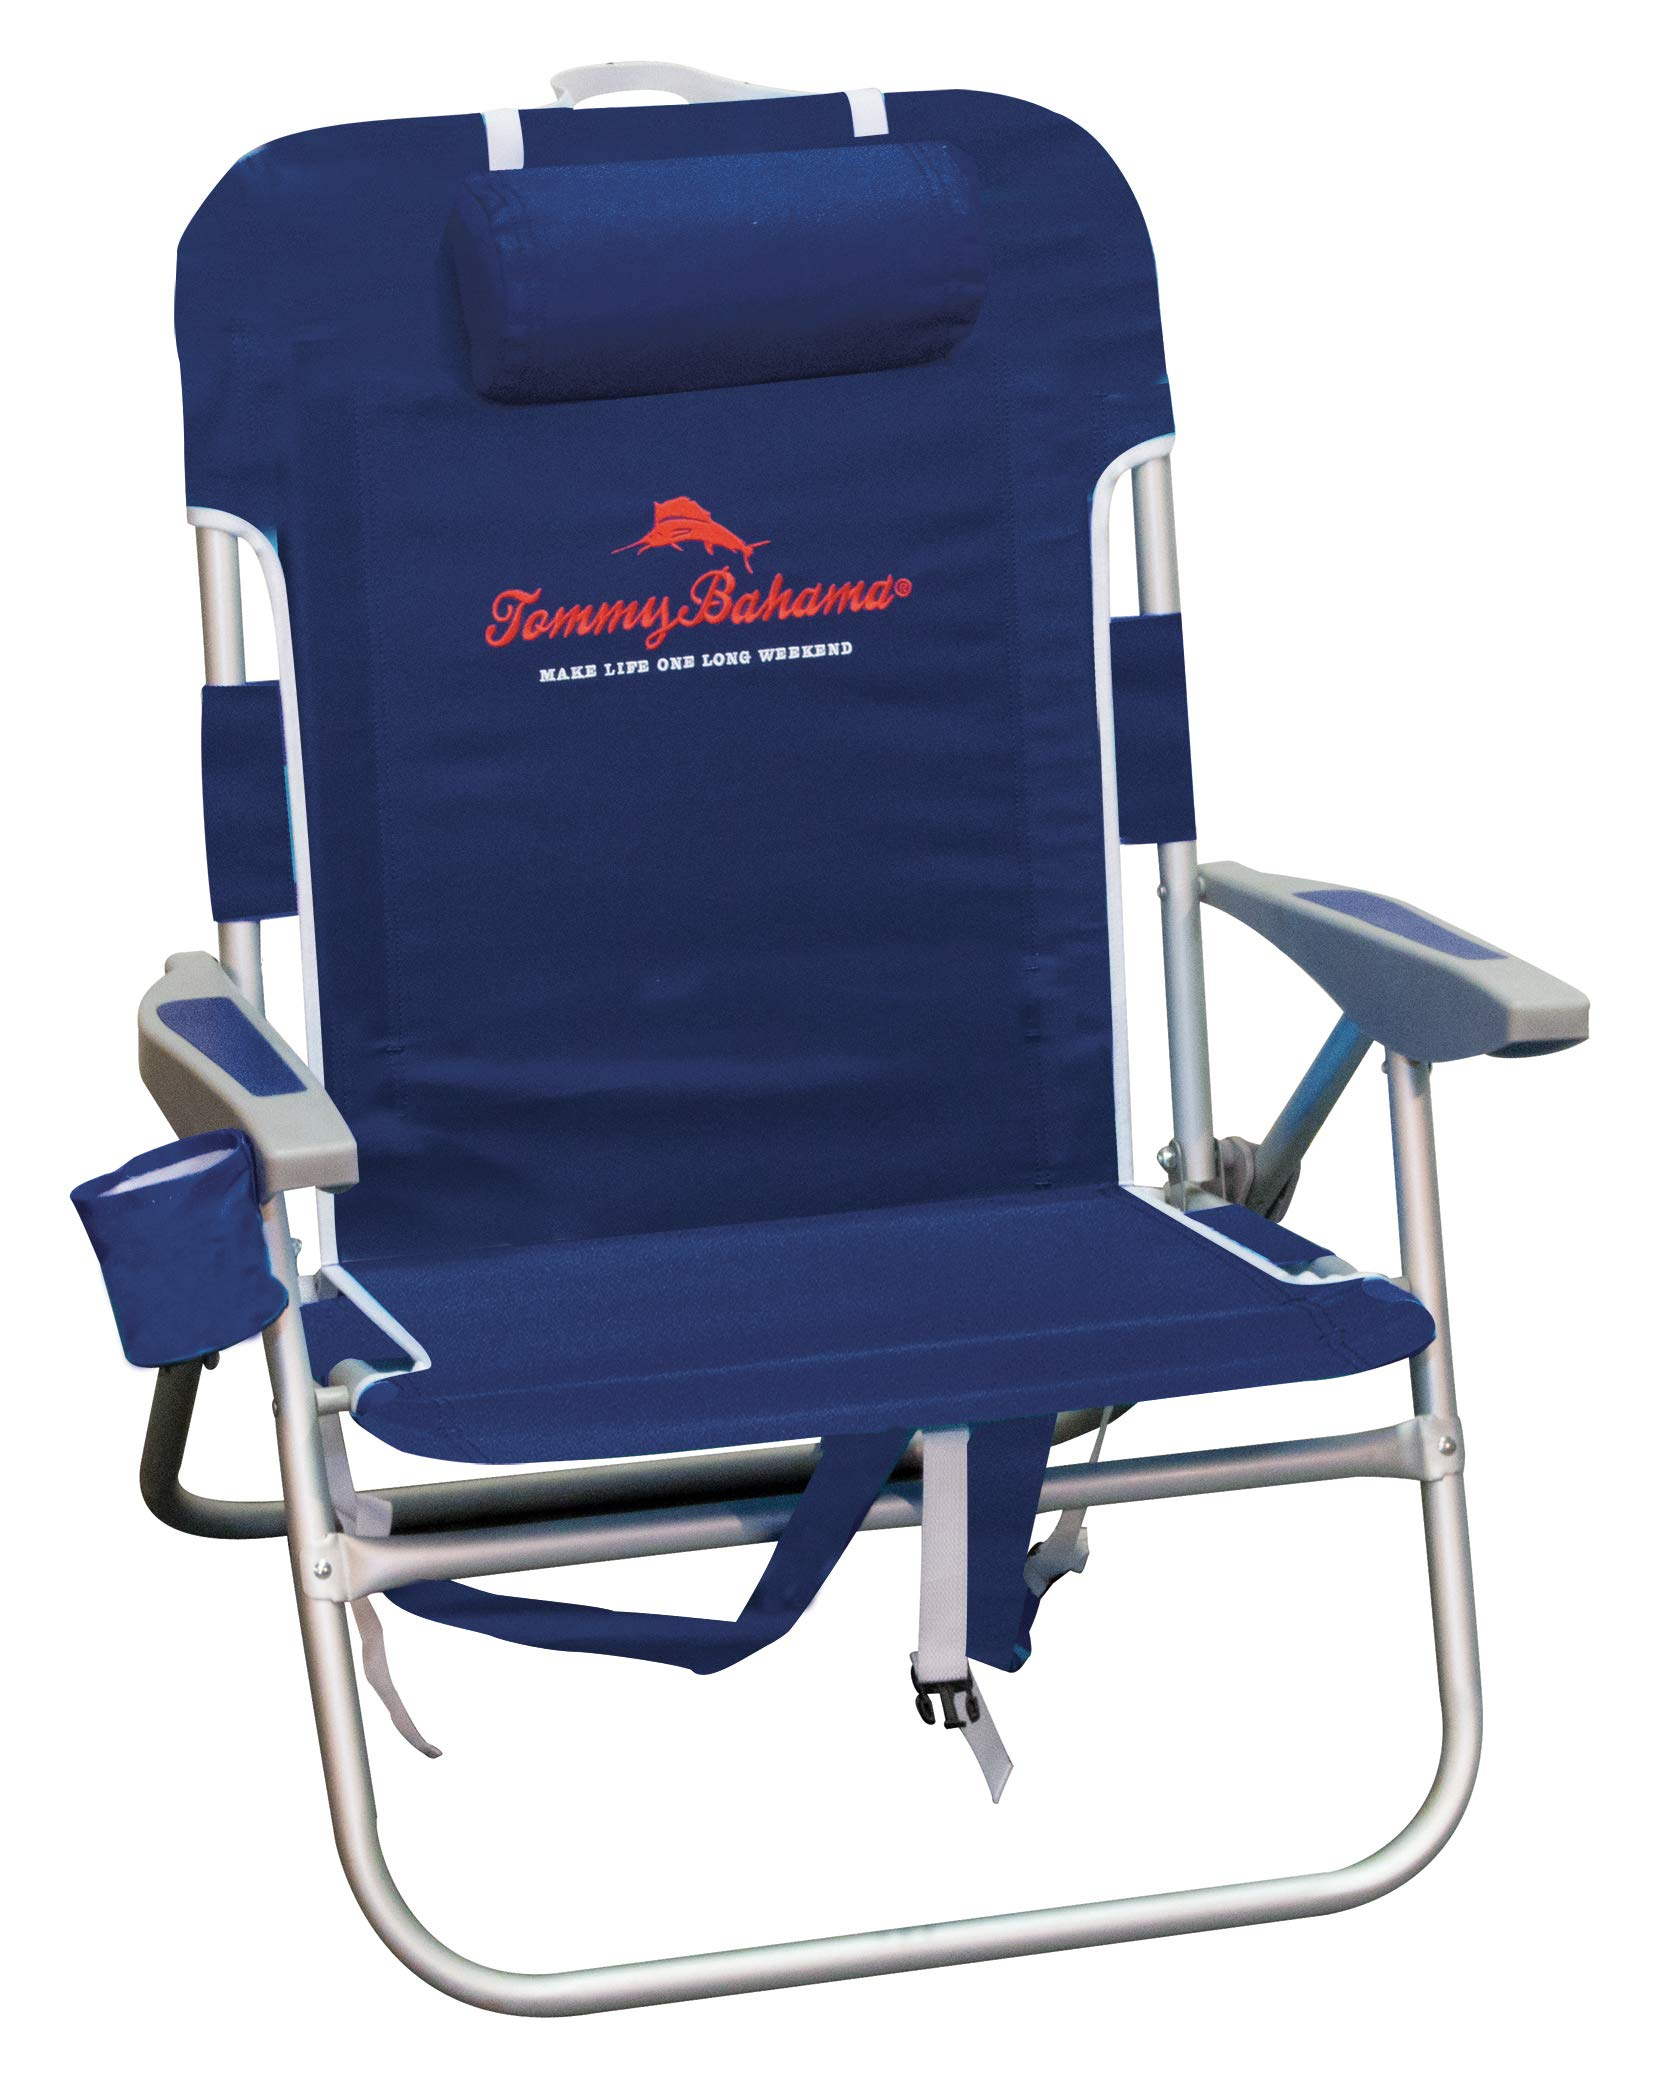 Tommy Bahama 4-Position Big Boy Backpack Beach Chair - Navy by Tommy Bahama